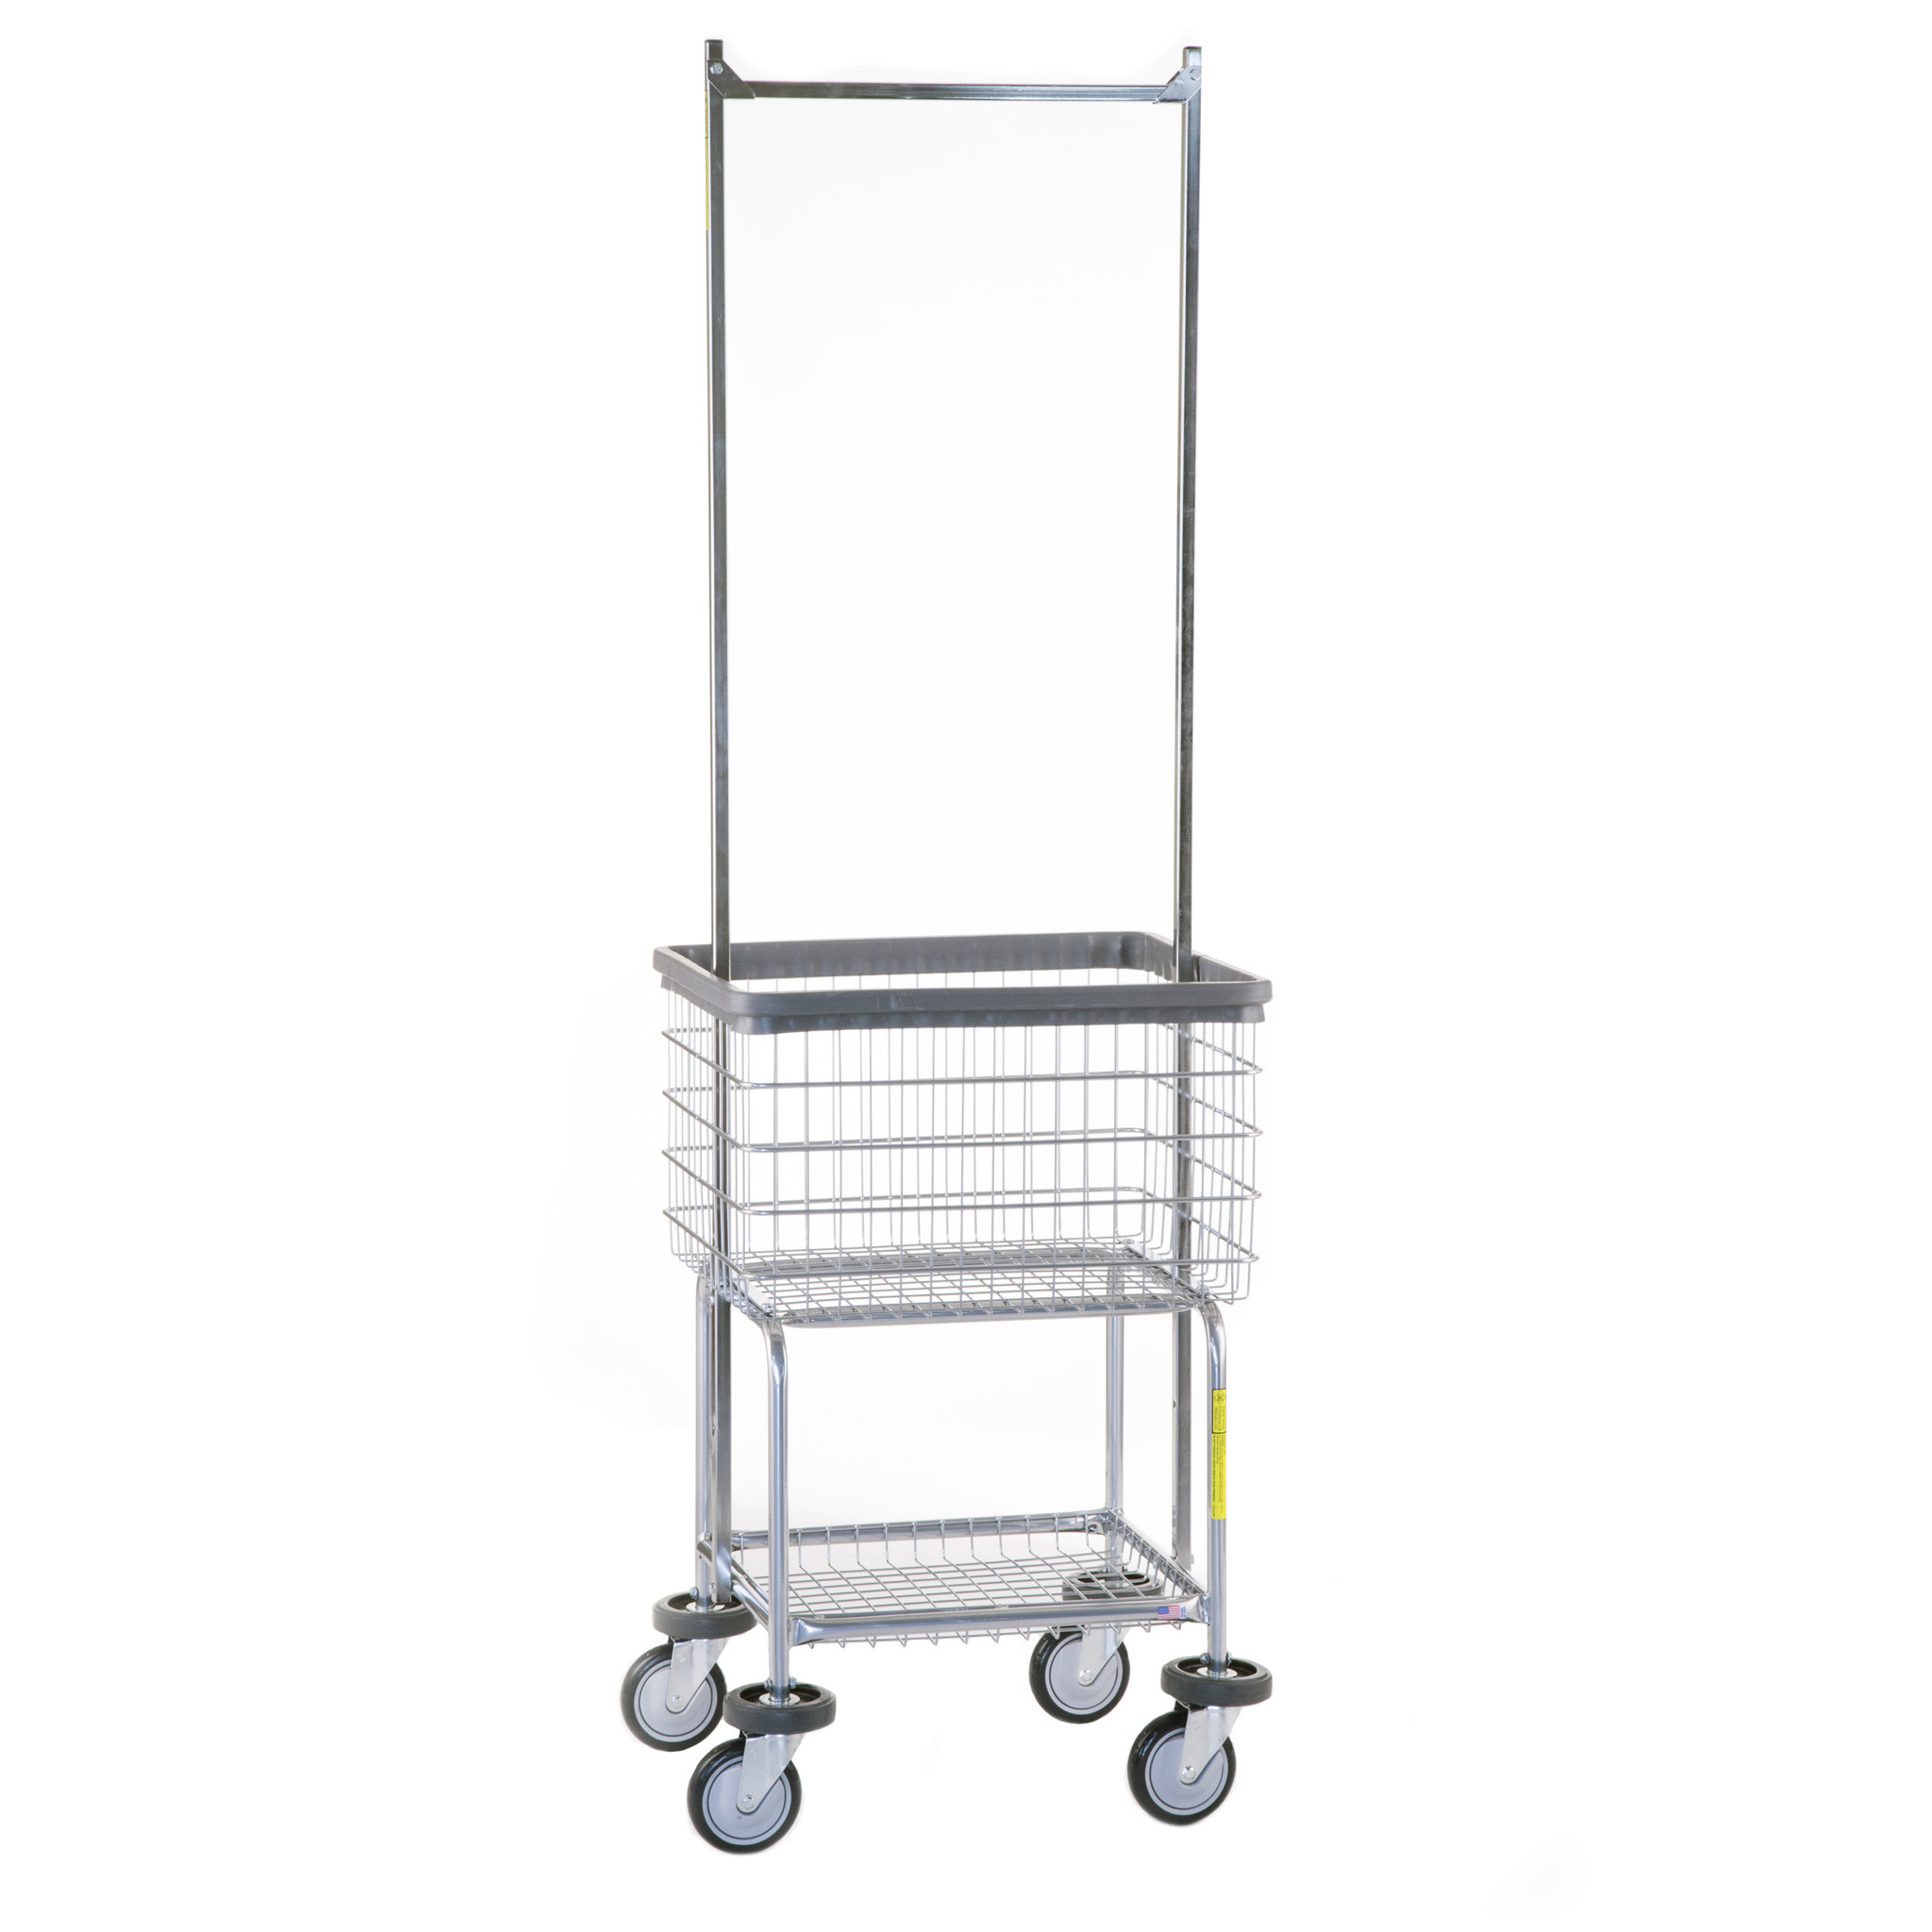 Deluxe Elevated Laundry Cart 300G55